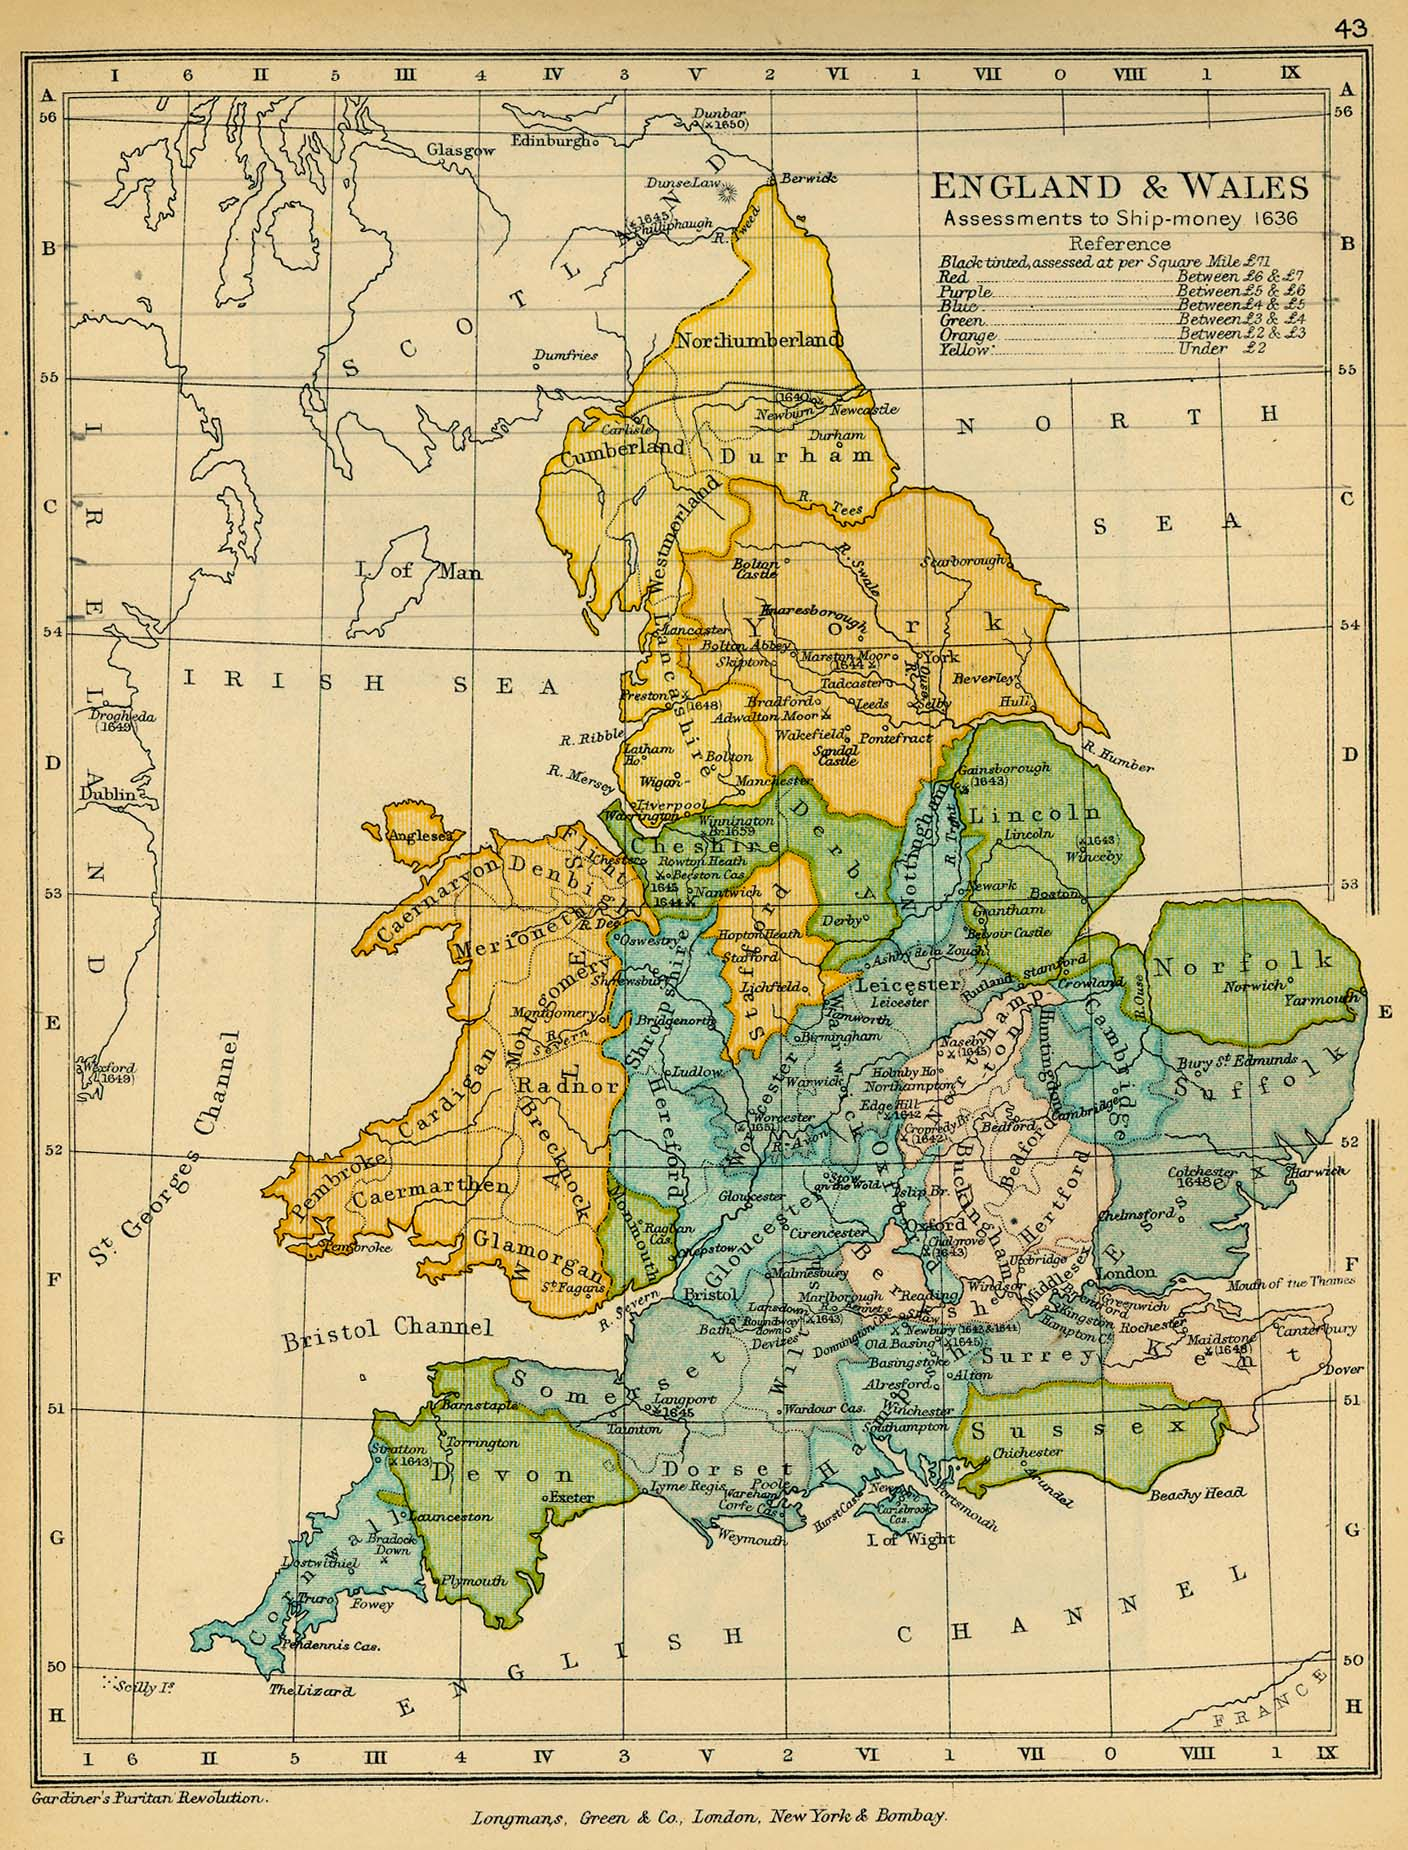 Map of Assessments to Ship-money, England and Wales 1636